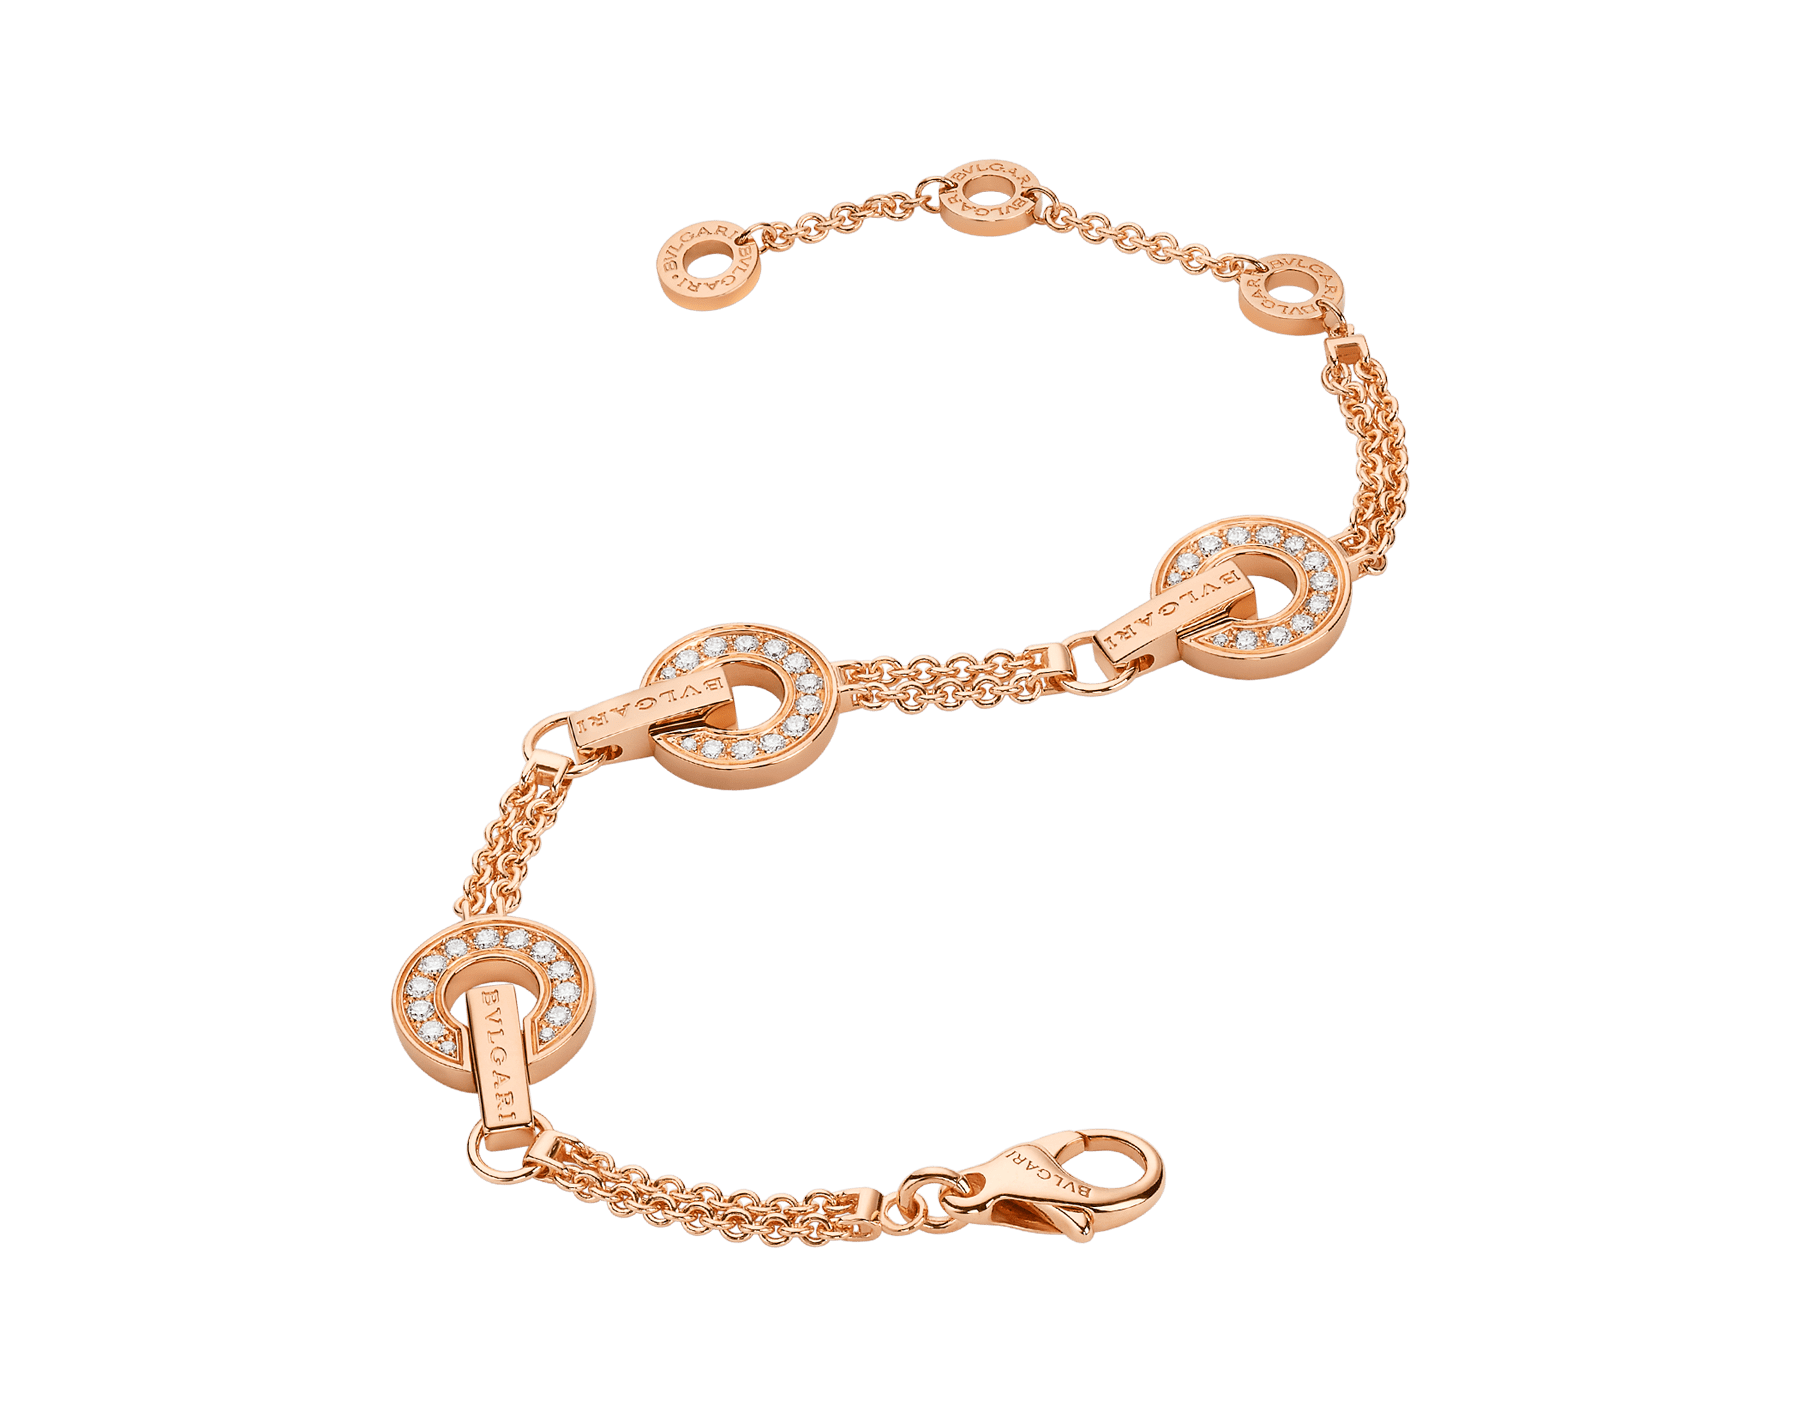 BVLGARI BVLGARI openwork 18 kt rose gold bracelet set with full pavé diamonds on the circular elements BR858775 image 2